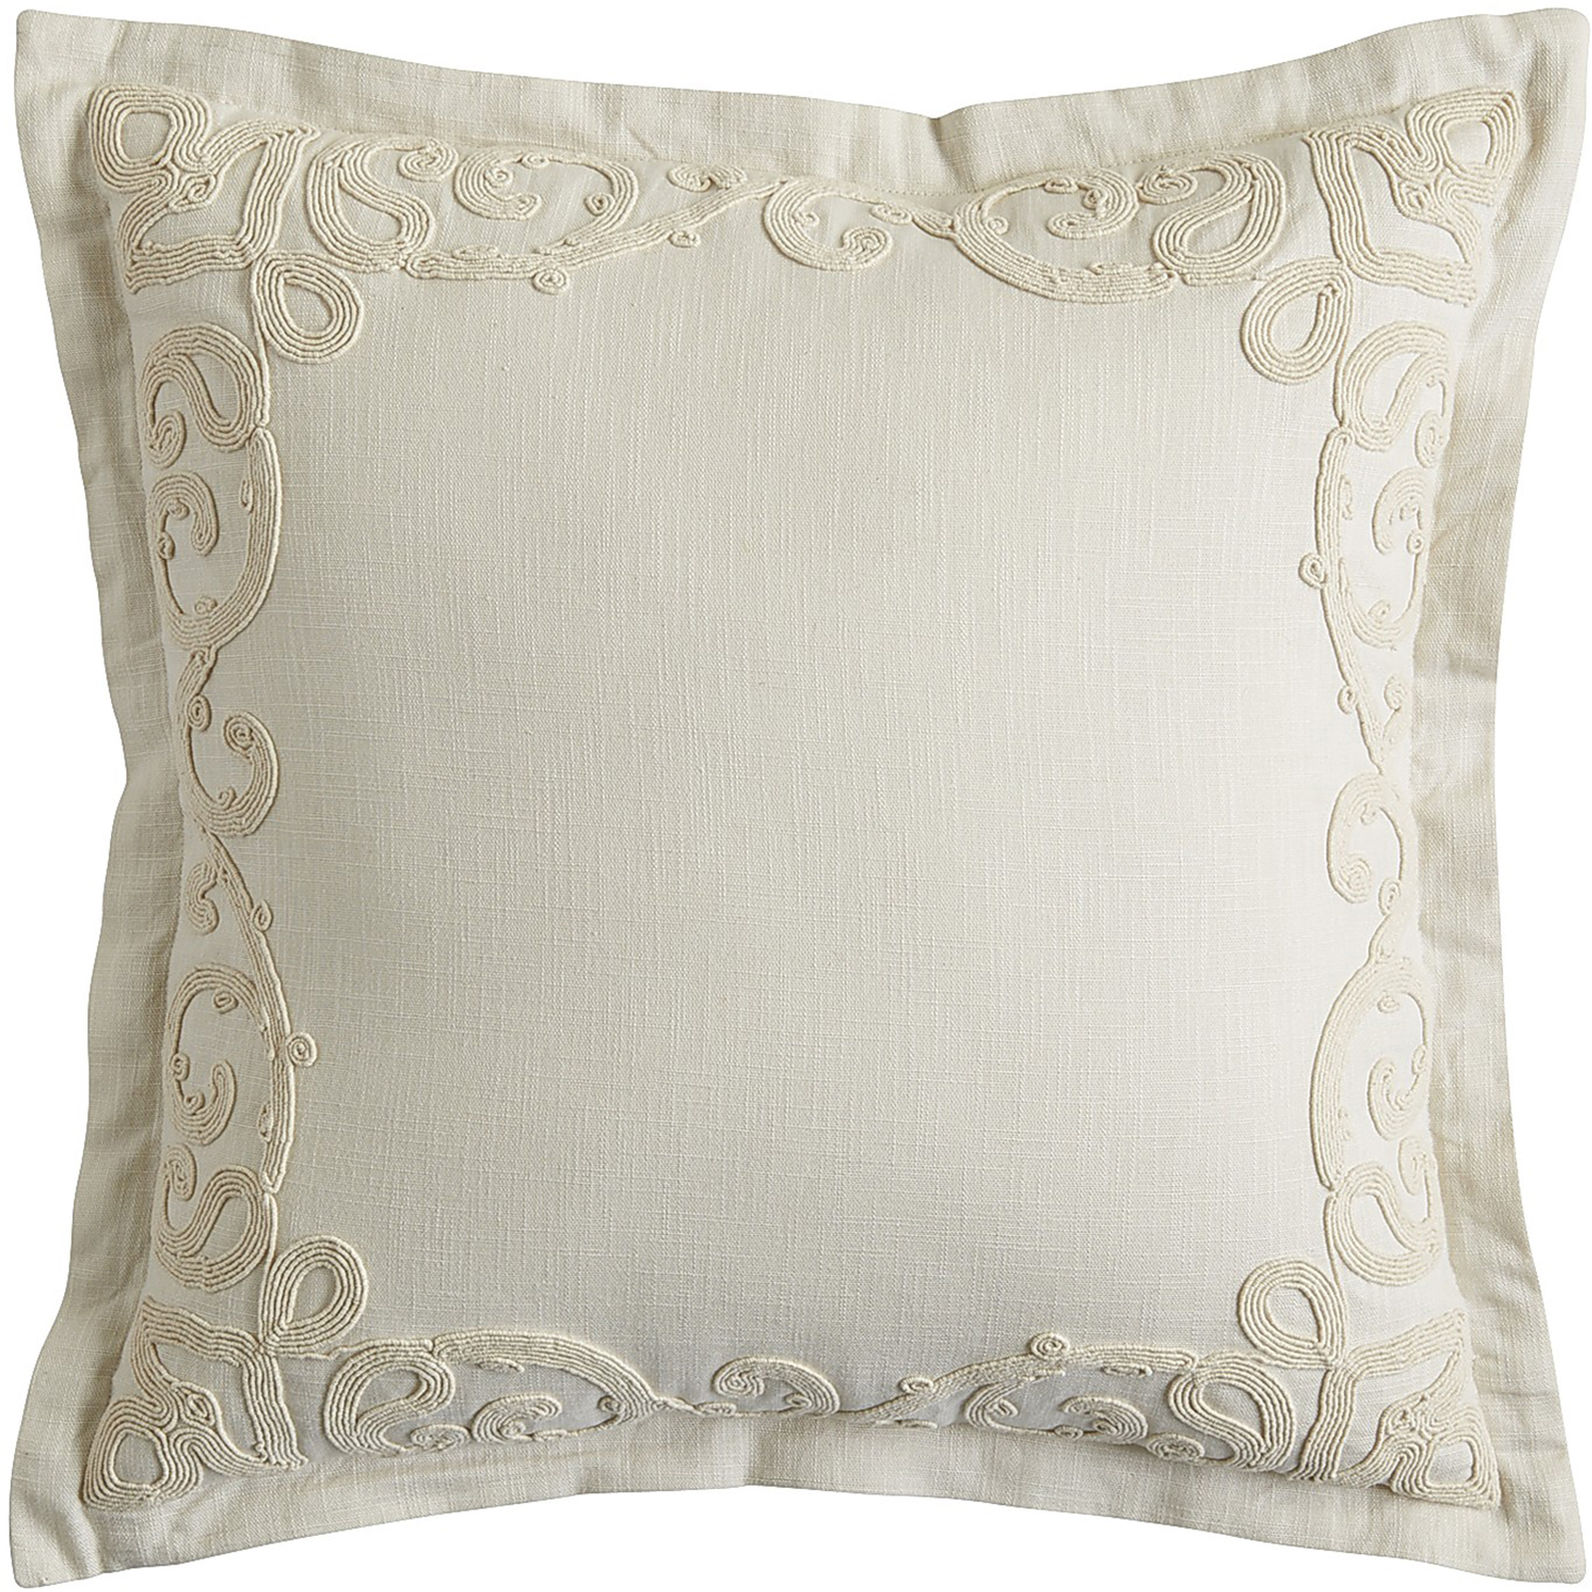 Dhurrie Embroidered Frame Pillow - Gray | Pier 1 Imports